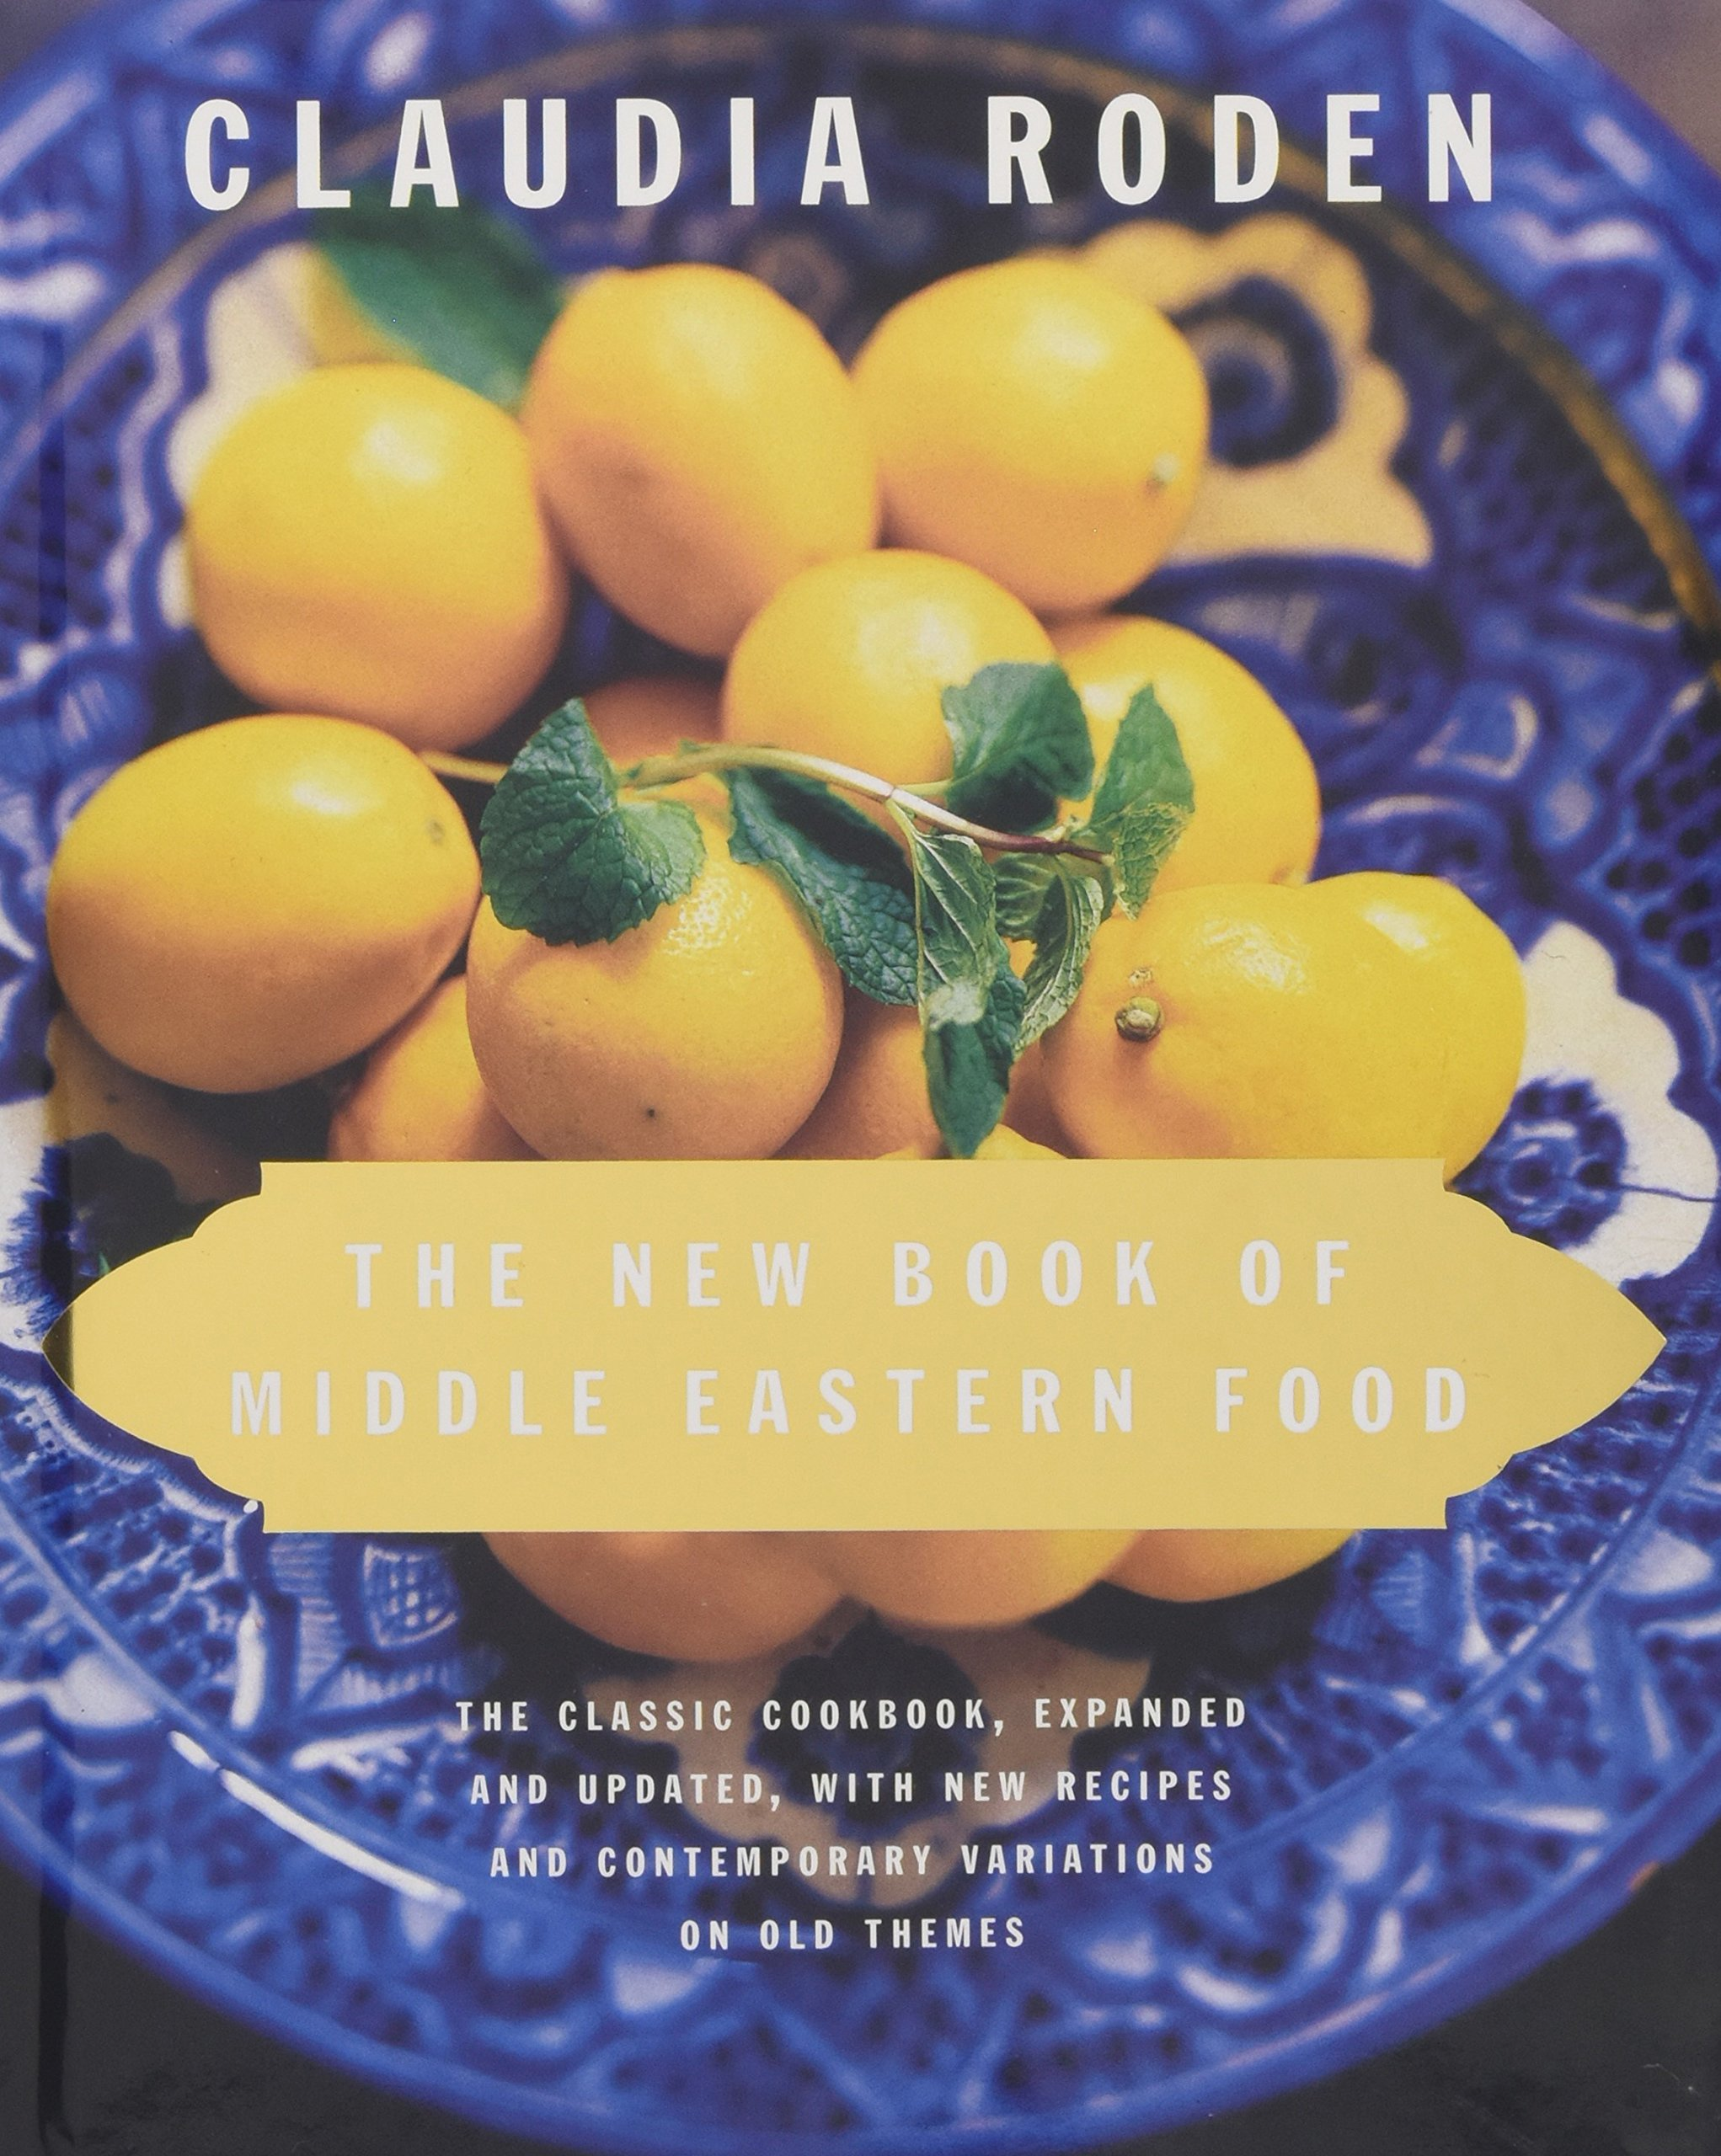 The new book of middle eastern food the classic cookbook expanded the new book of middle eastern food the classic cookbook expanded and updated with new recipes and contemporary variations on old themes claudia roden forumfinder Choice Image